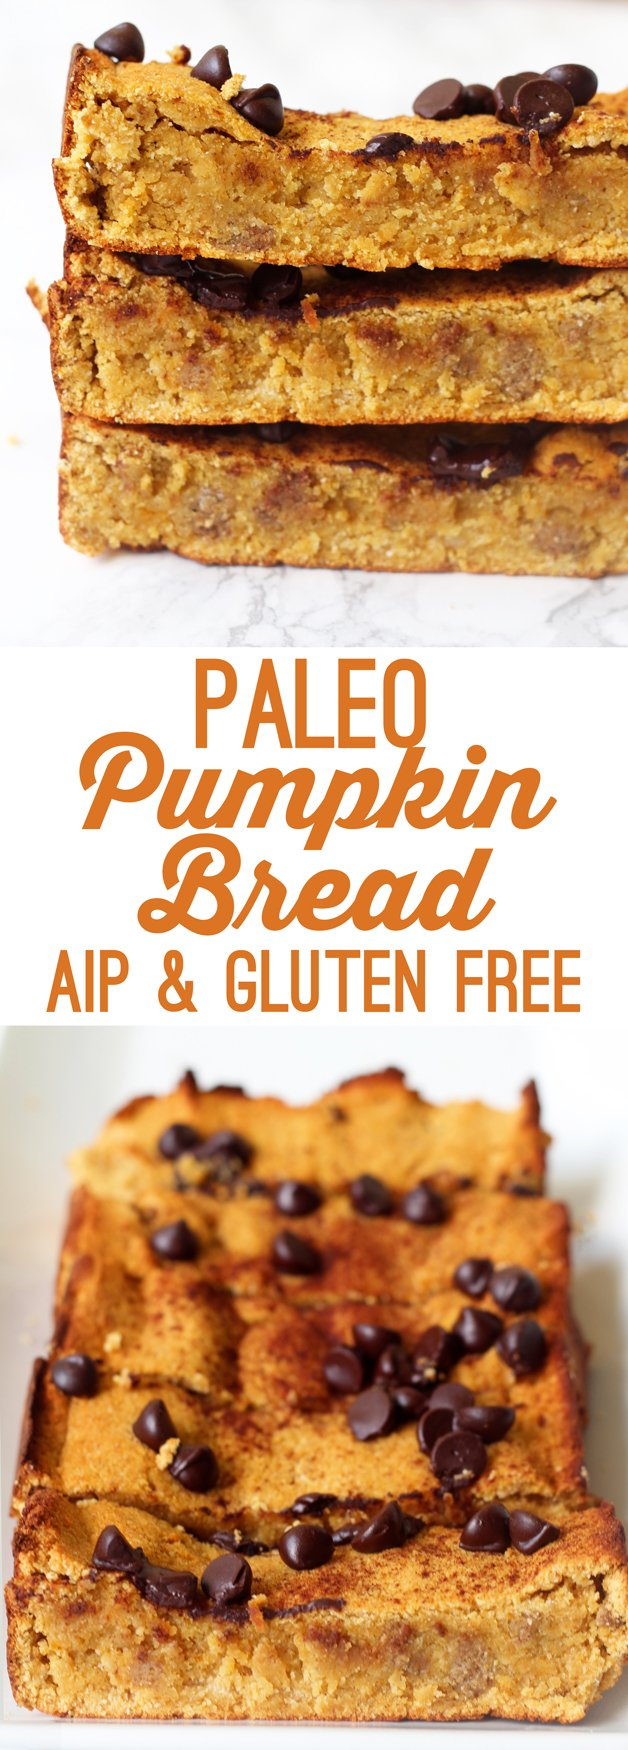 Paleo Chocolate Chip Pumpkin Bread (AIP, Gluten Free)